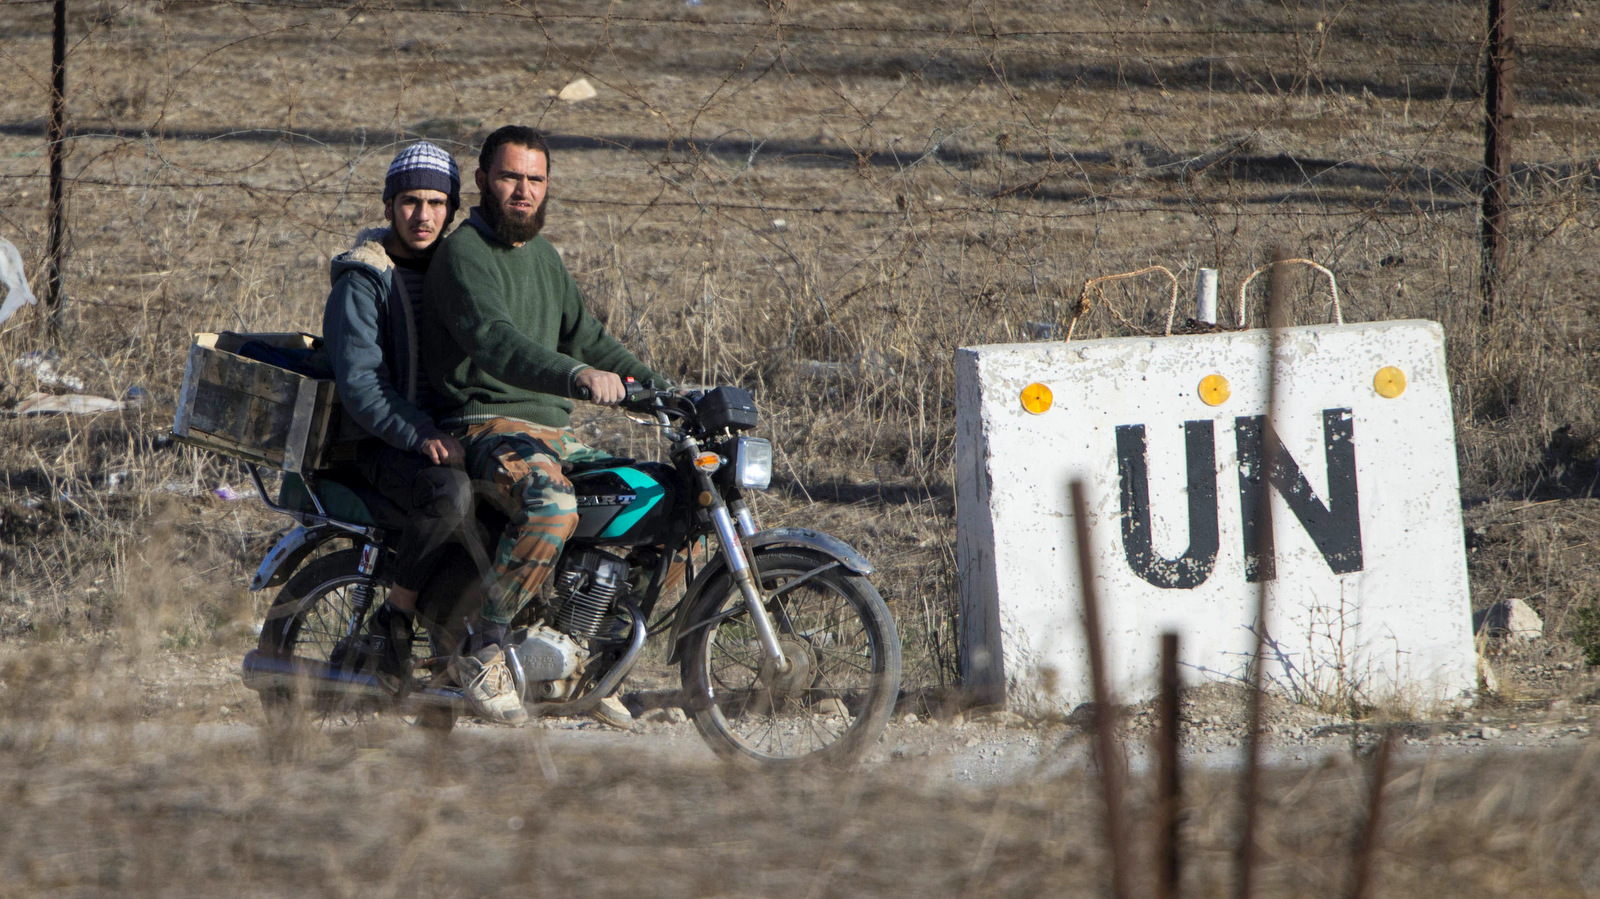 Two men, not specified which group of rebels, ride a motorcycle towards an abandoned UN base at Syria's Quneitra border crossing between Syria and the Israeli-controlled Golan Heights, Monday, Nov. 28, 2016. (AP Photo/Ariel Schalit)